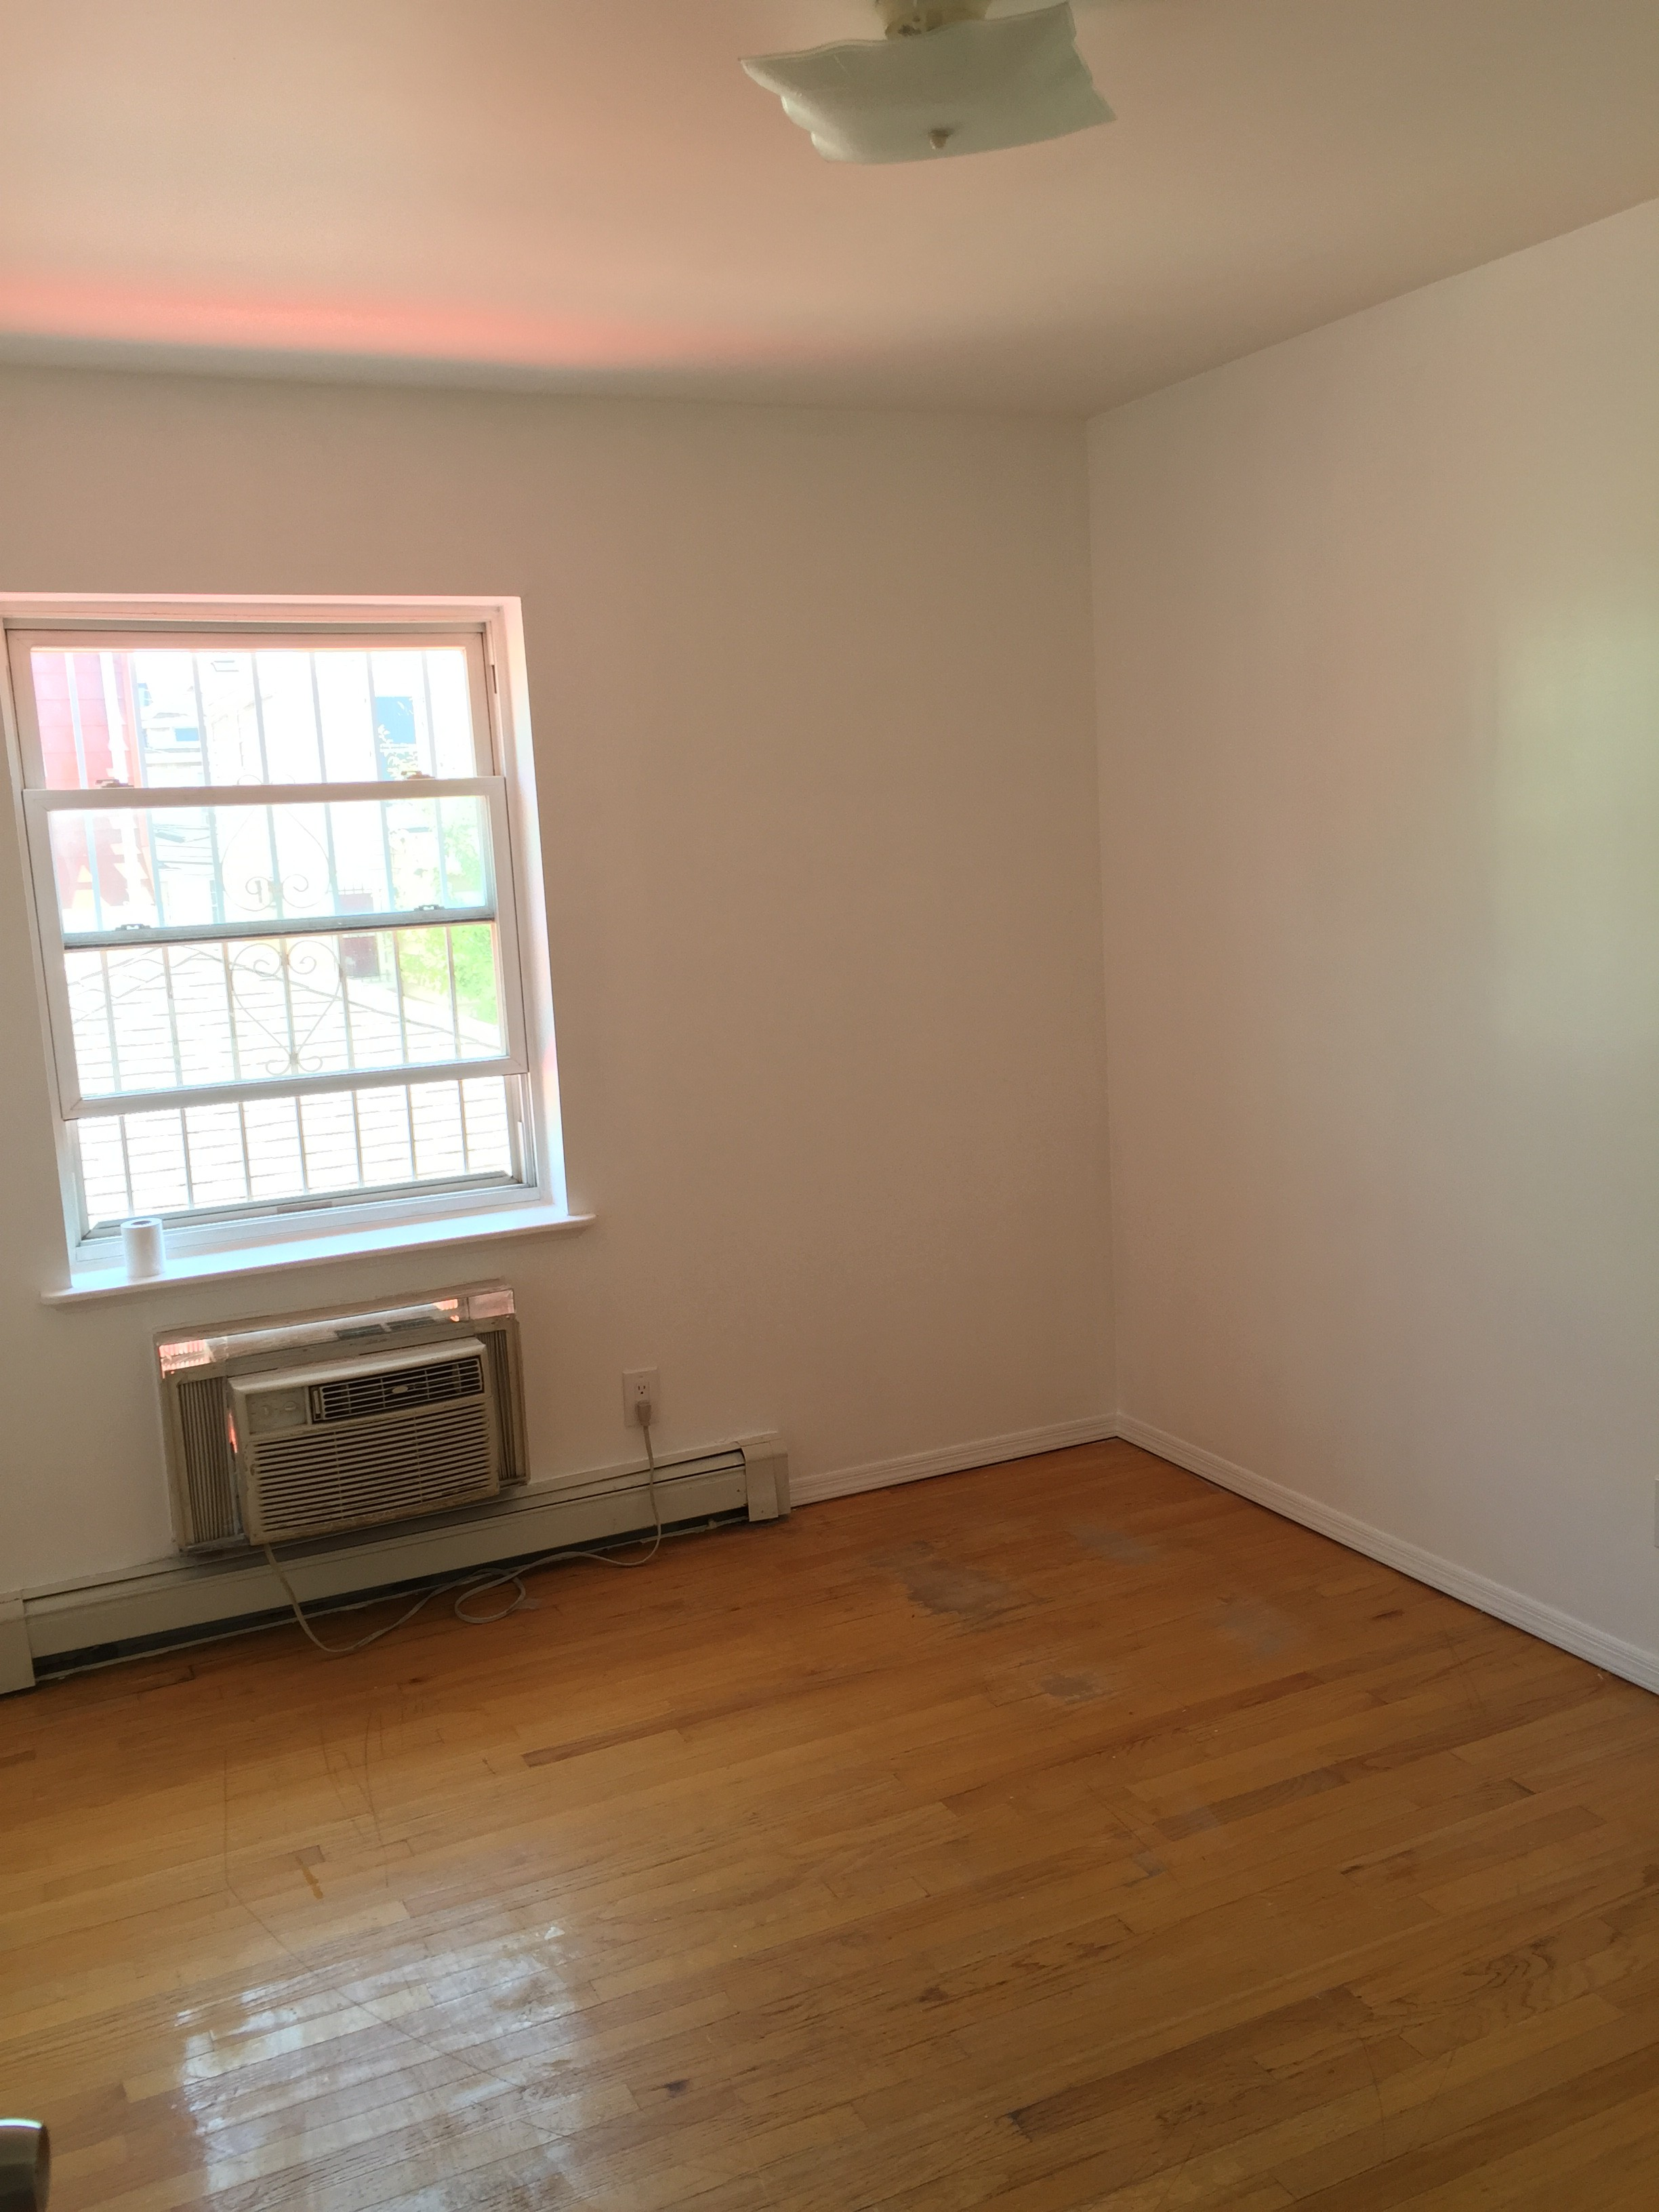 150 Sq Ft Room For Rent 203 Jwong Boutique